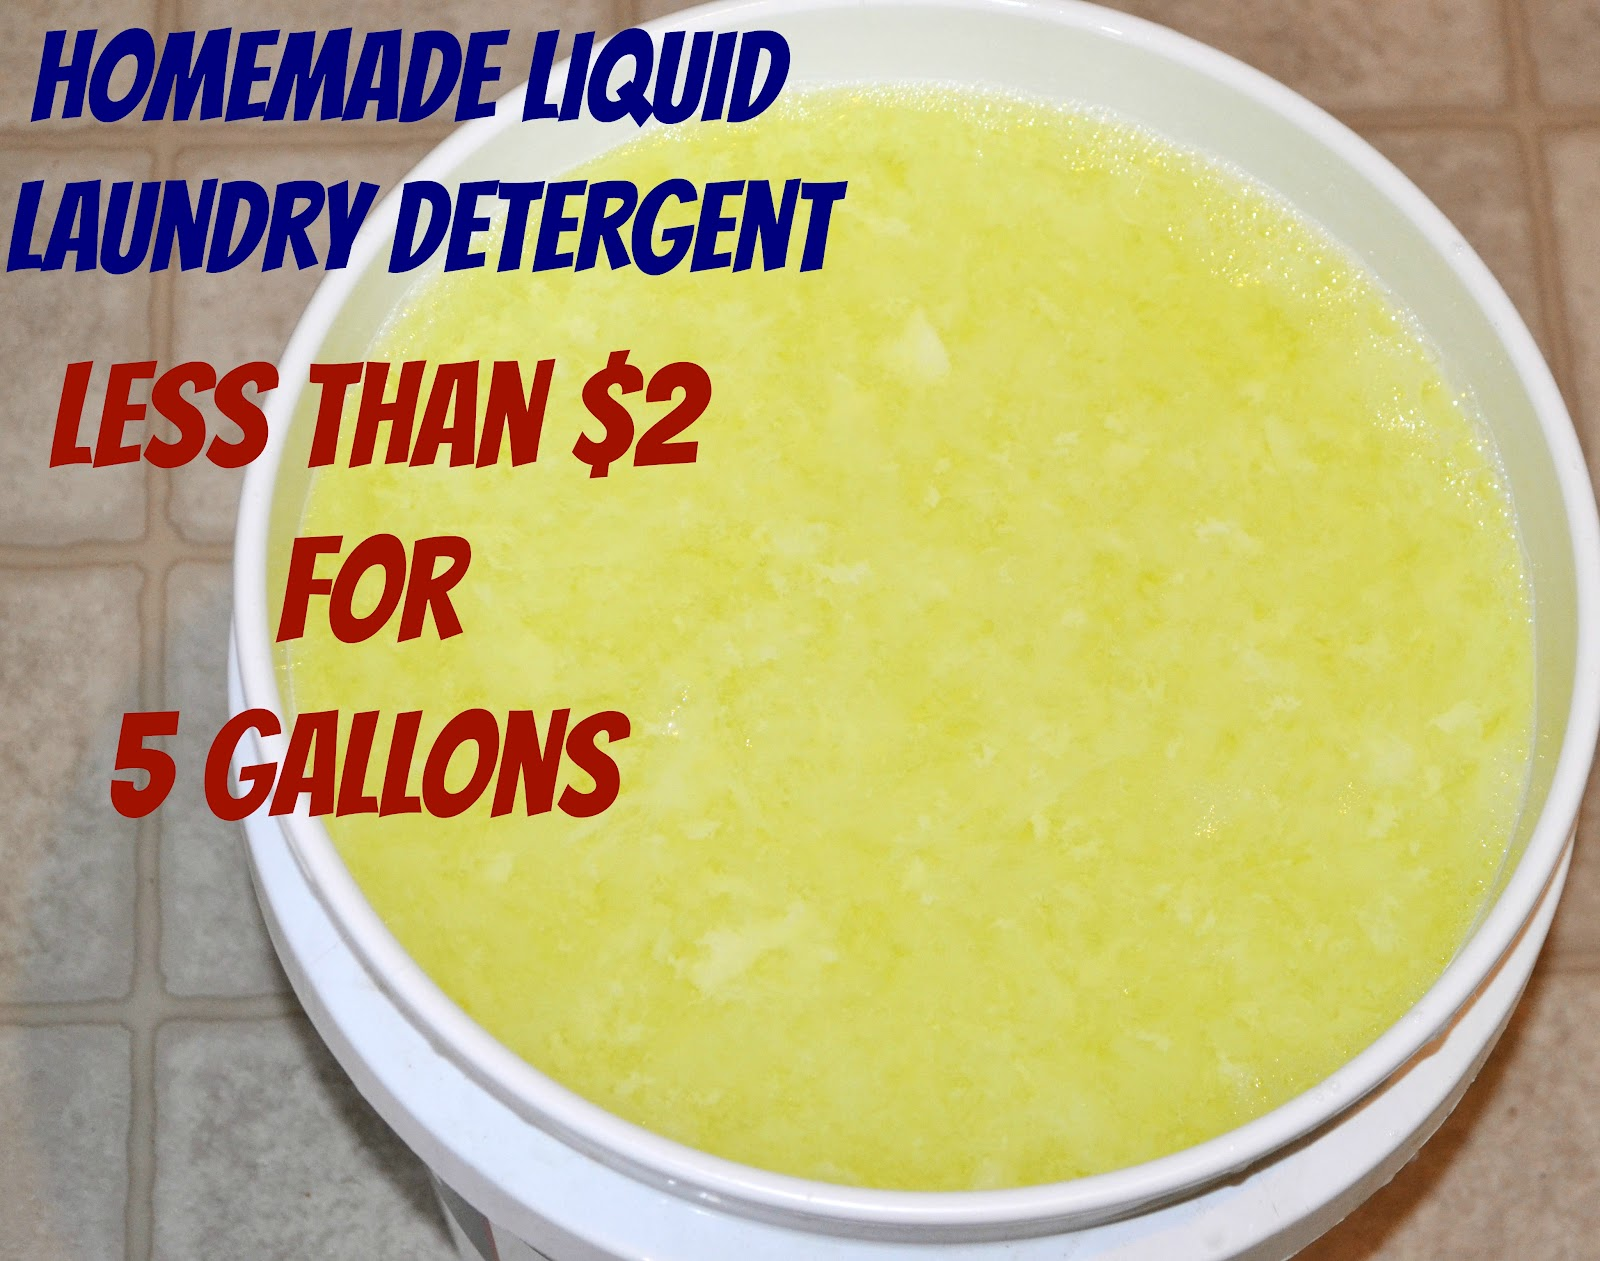 How Much He Detergent To Use Homemade Liquid Laundry Detergent Mrs Happy Homemaker